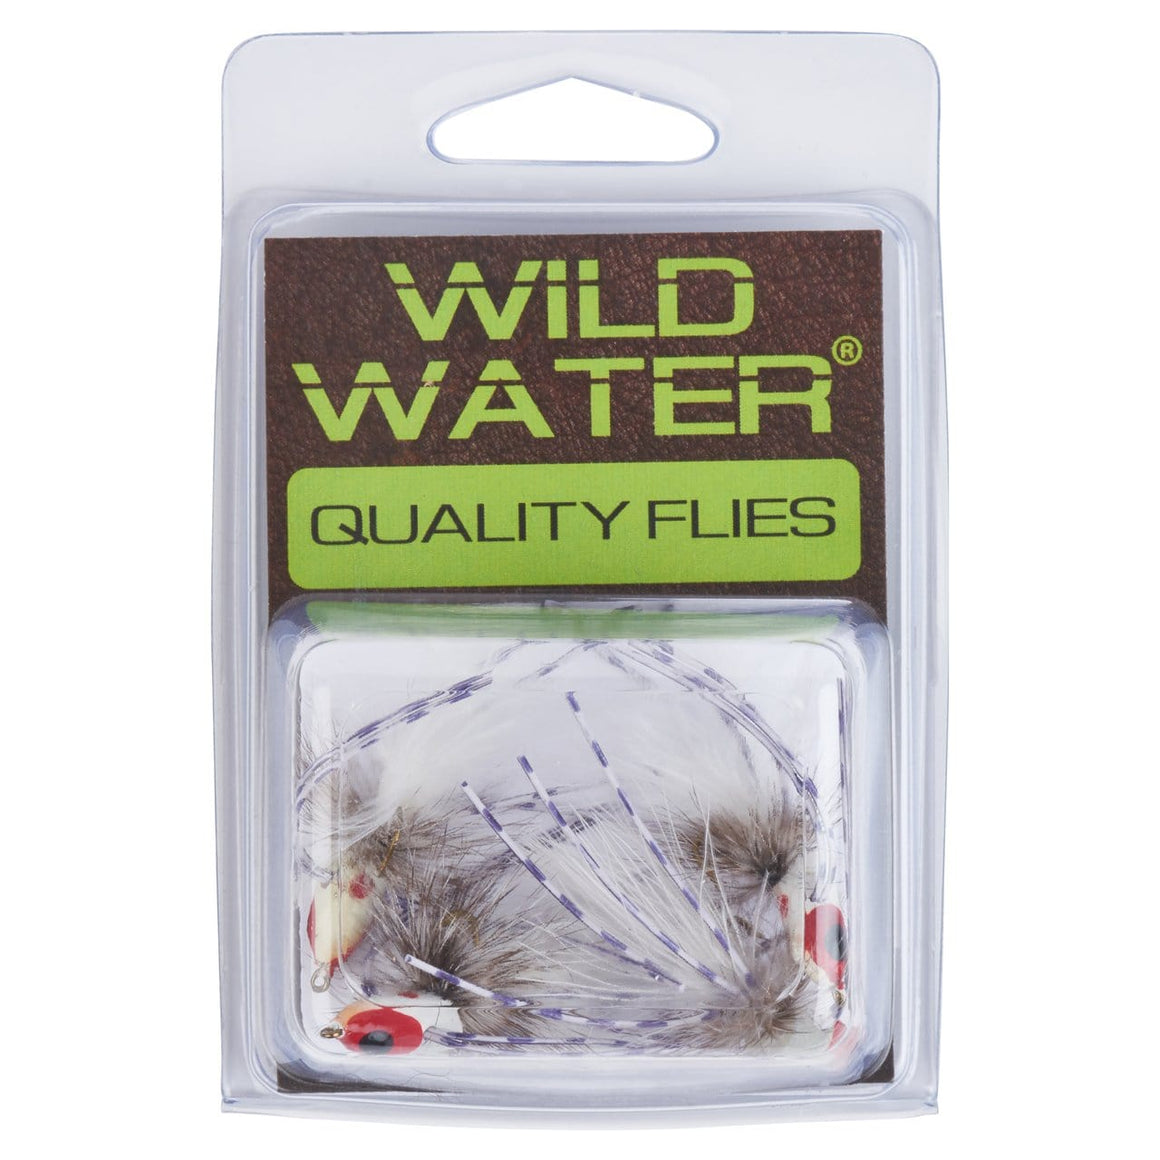 Wild Water White Glowing Spider Leg Slider Popper by Pultz Poppers, Size 8, Qty. 4